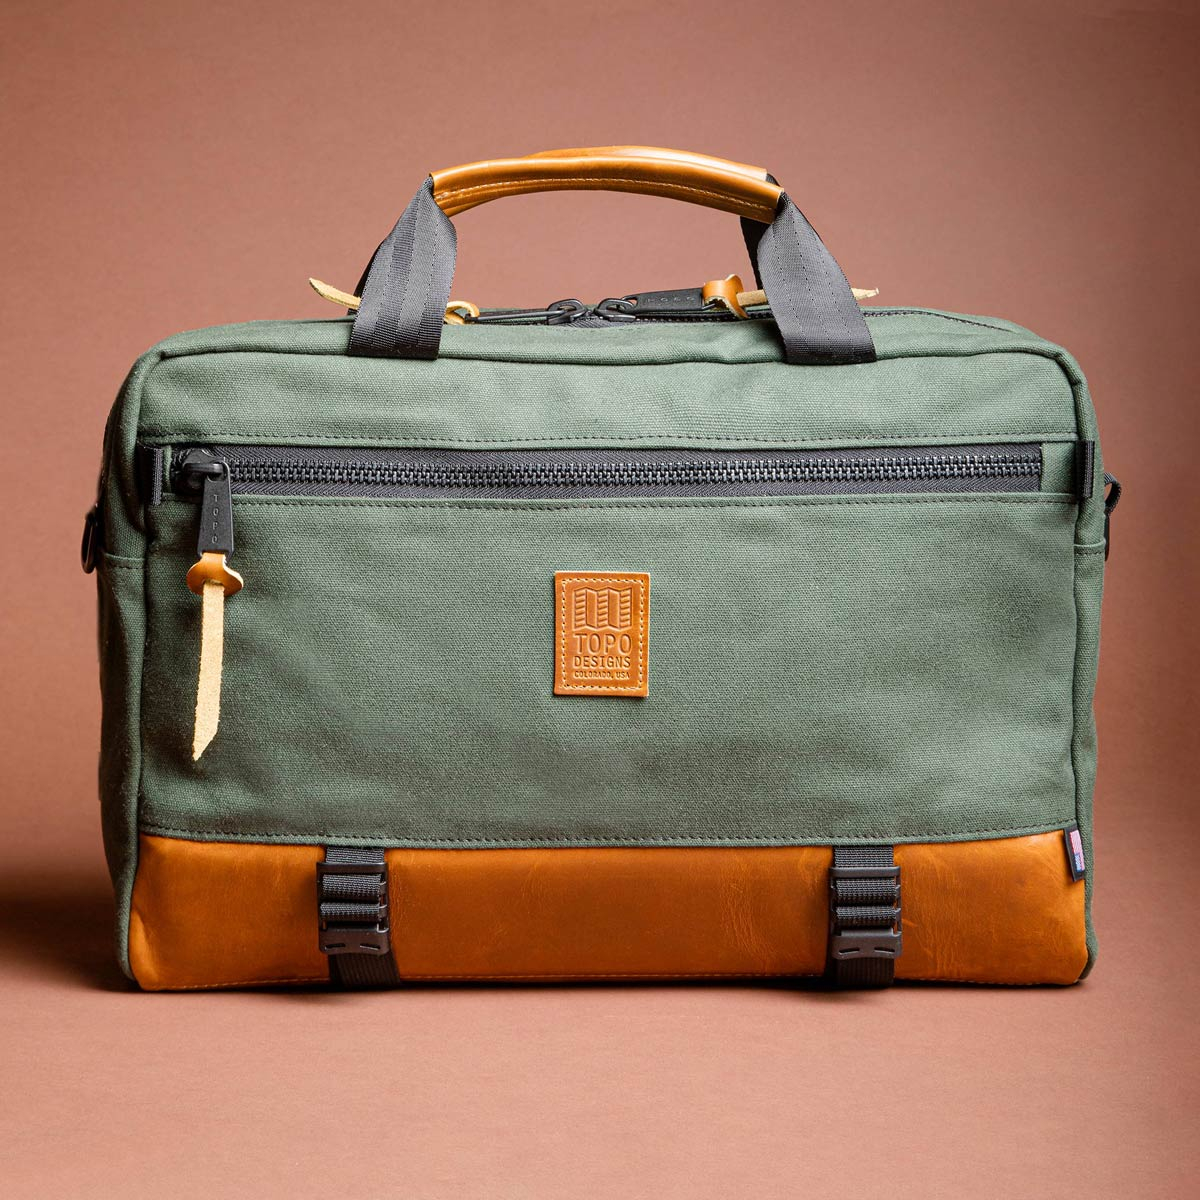 Topo Designs Commuter Briefcase Heritage Olive Canvas/Brown Leather, kies tussen drie draagstijlen